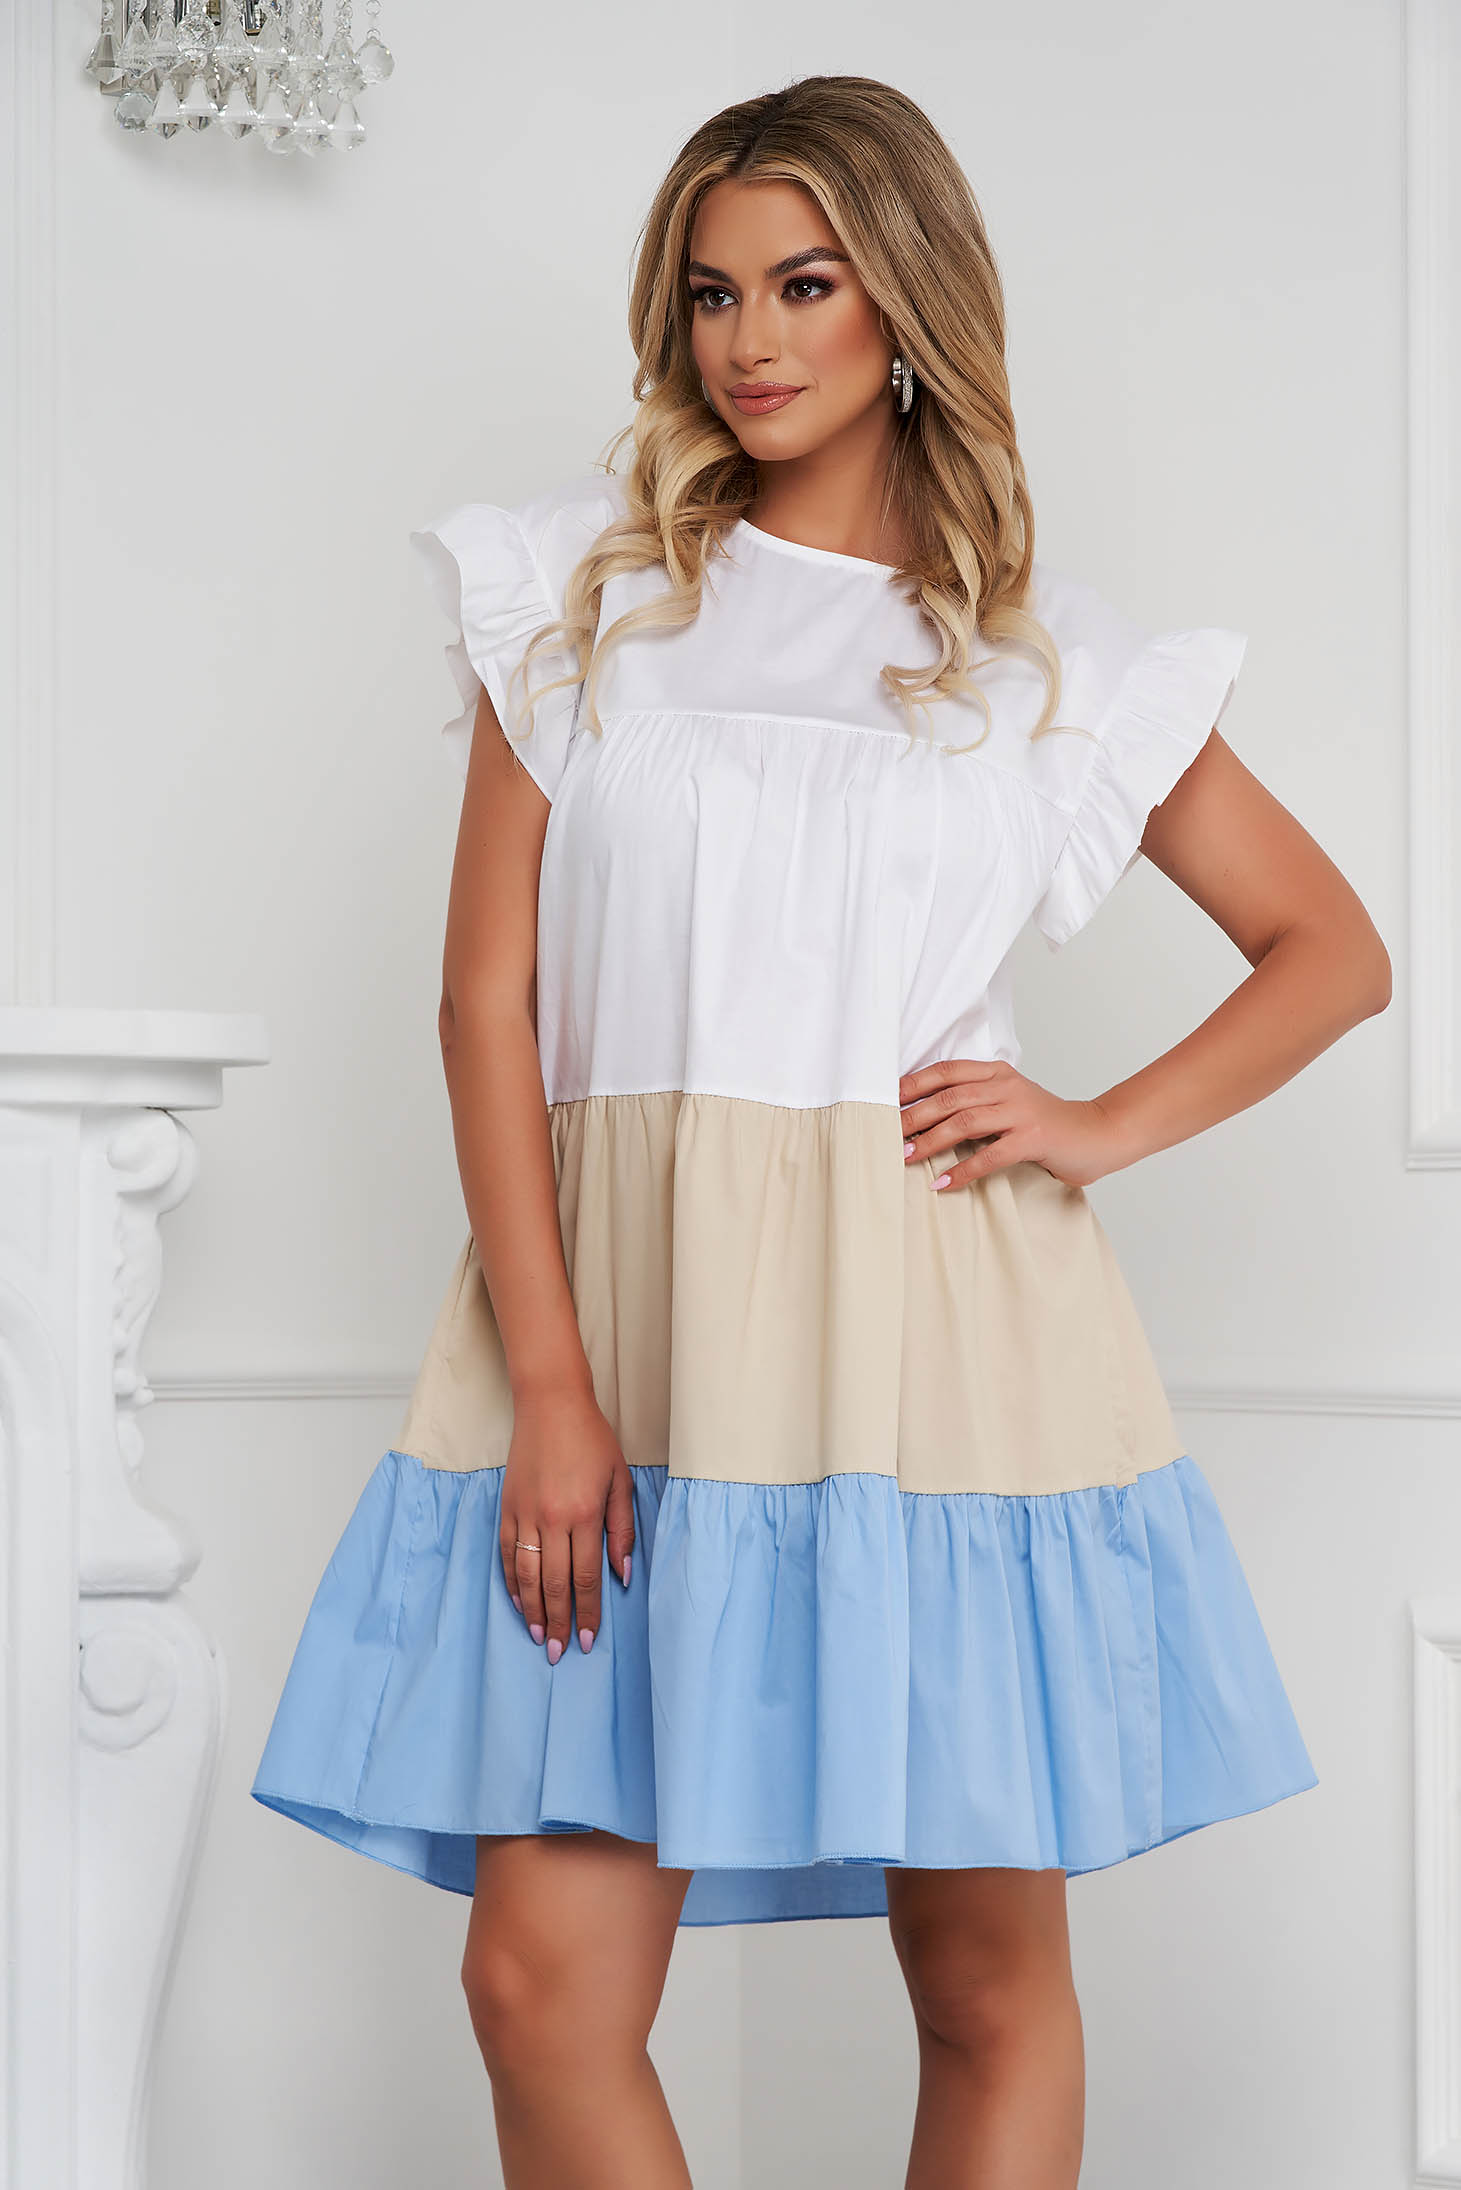 Lightblue dress thin fabric loose fit midi with ruffle details airy fabric